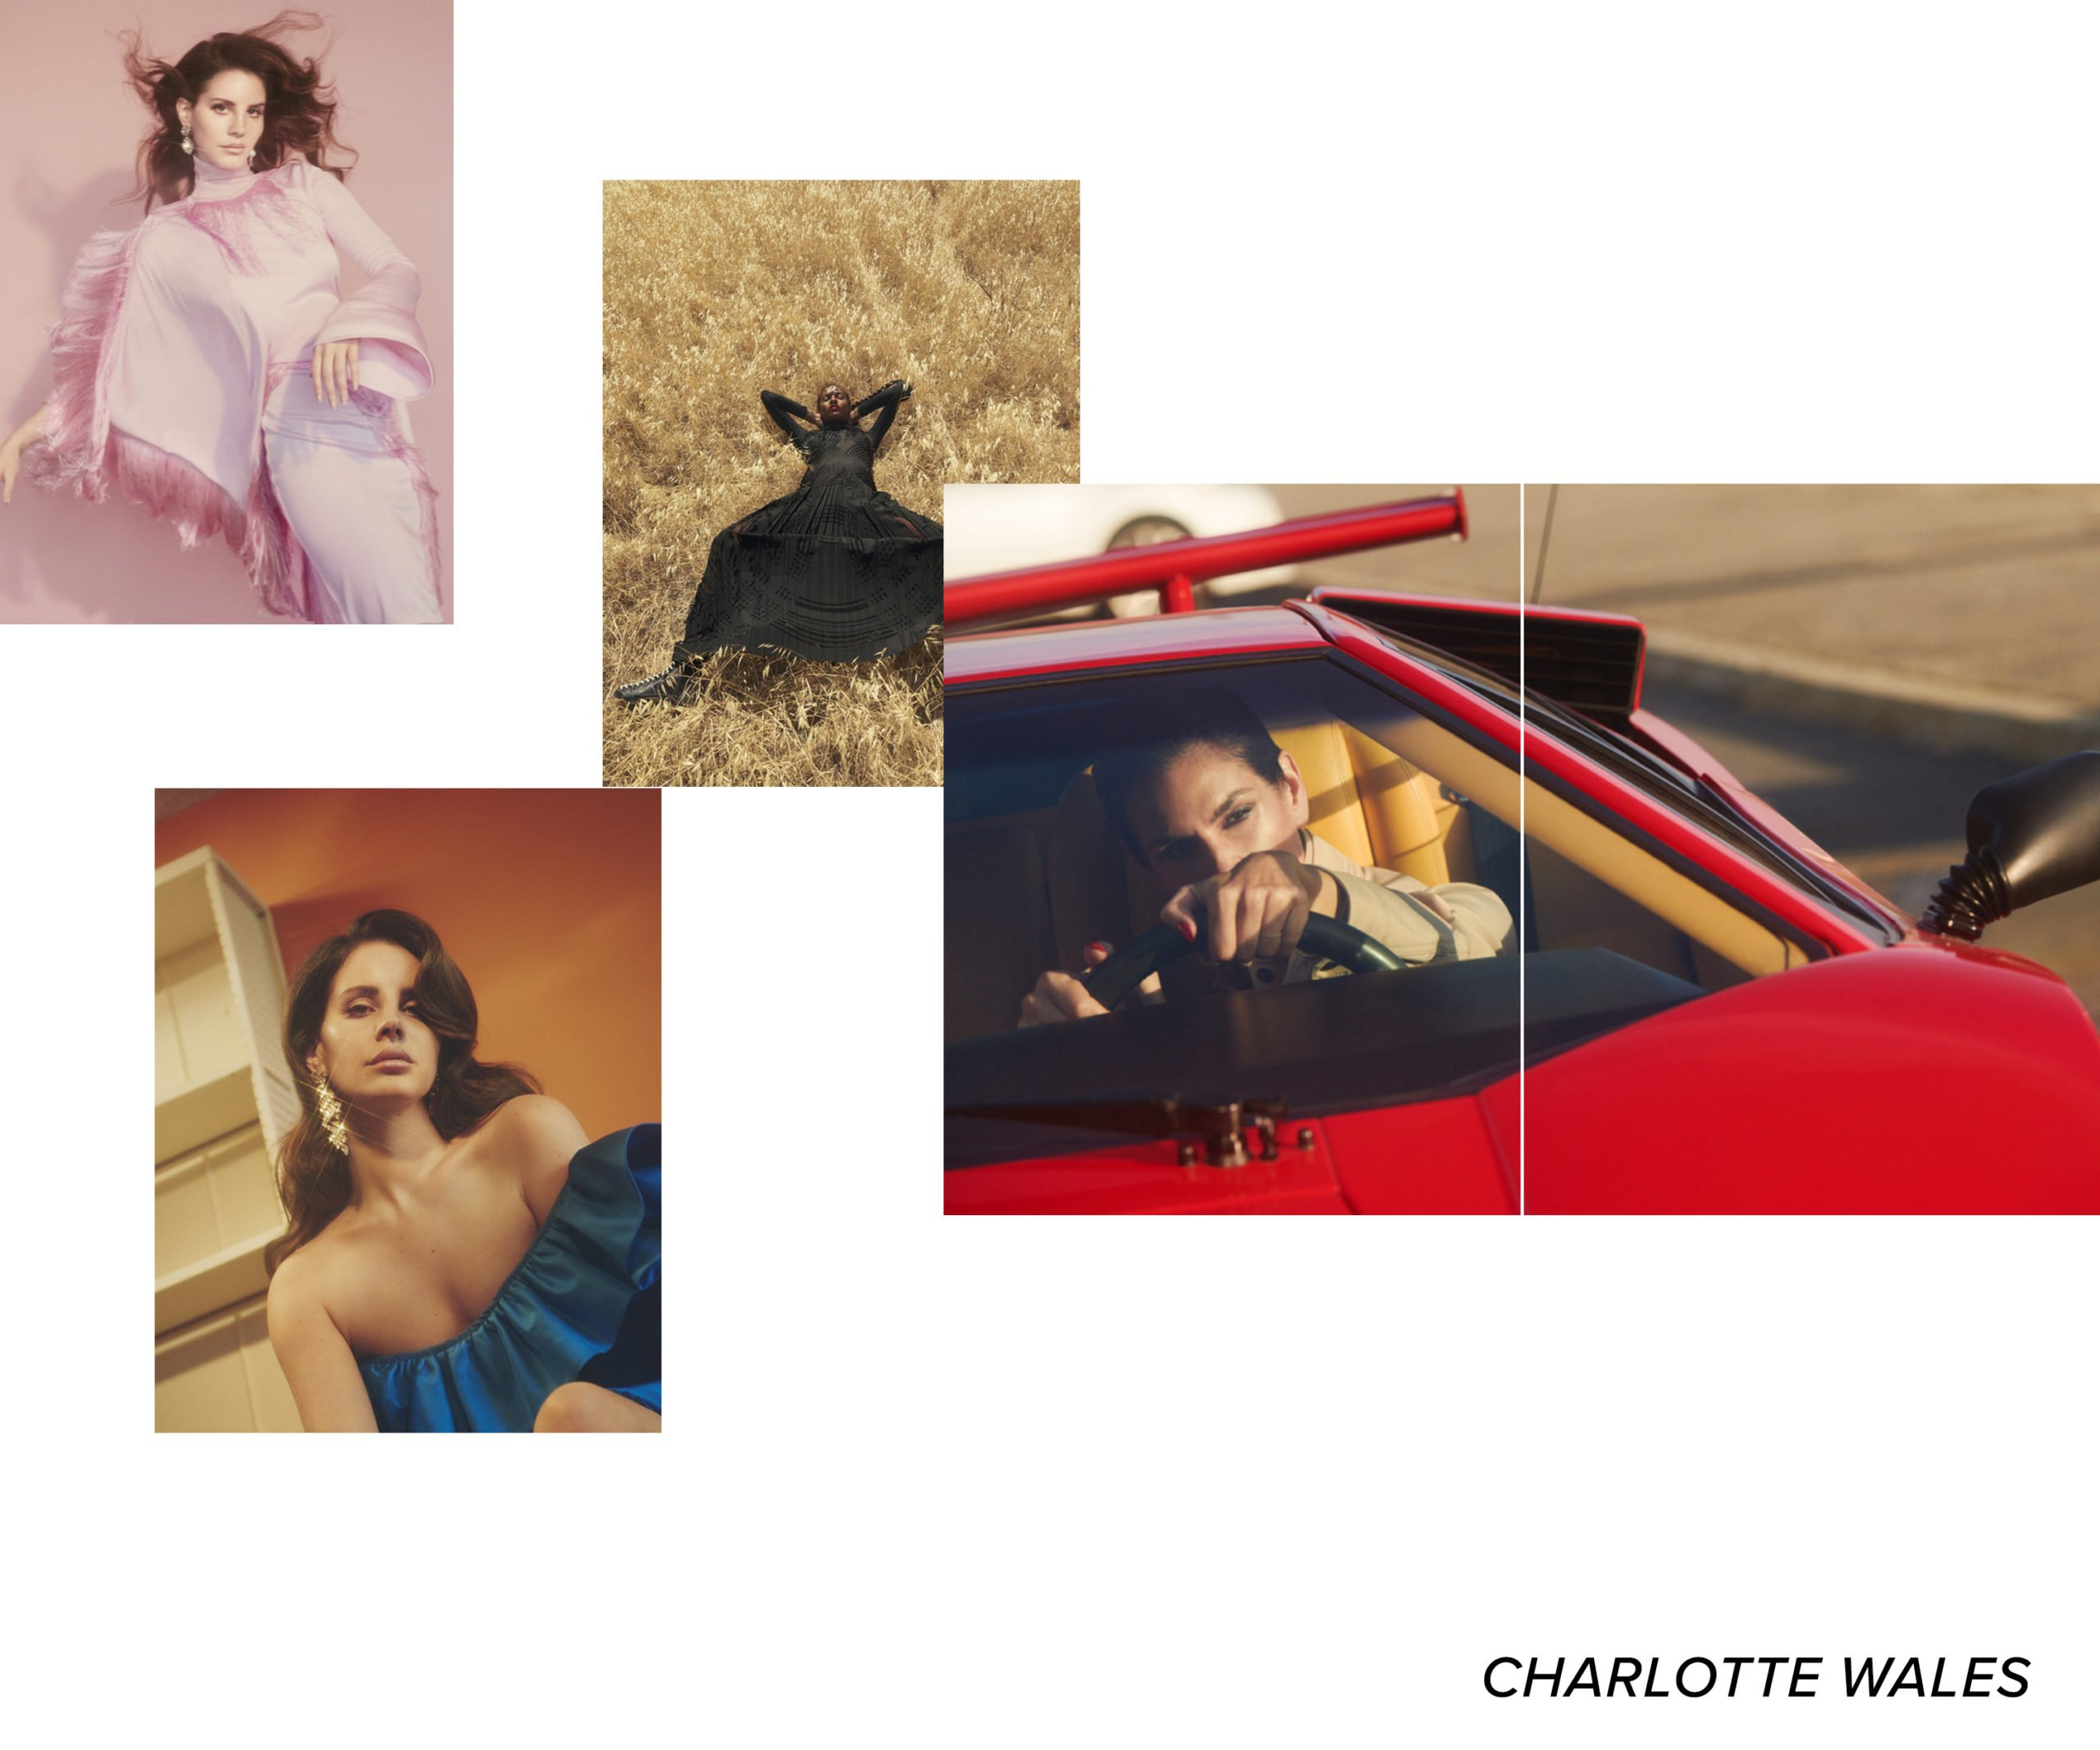 Charlotte Wales - 19 Photographers Taking Photos of Your Favorite Models and Designers - FilterGrade